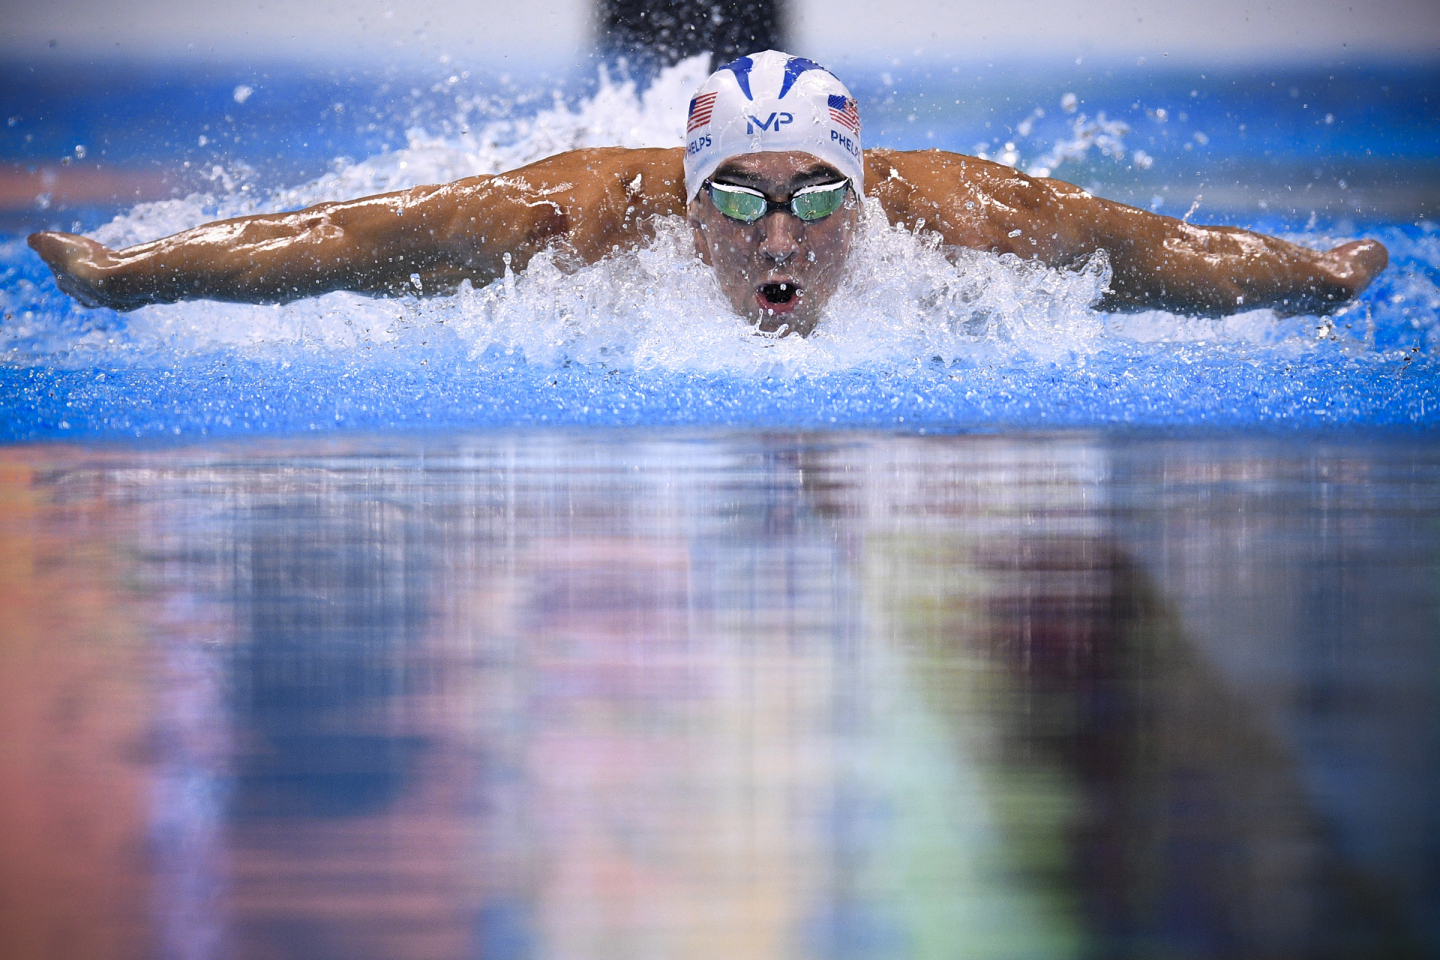 USA's Michael Phelps competes in a Men's 200m Individual Medley heat during the swimming event at the Rio 2016 Olympic Games at the Olympic Aquatics Stadium in Rio de Janeiro on August 10, 2016.   / AFP PHOTO / Martin BUREAU